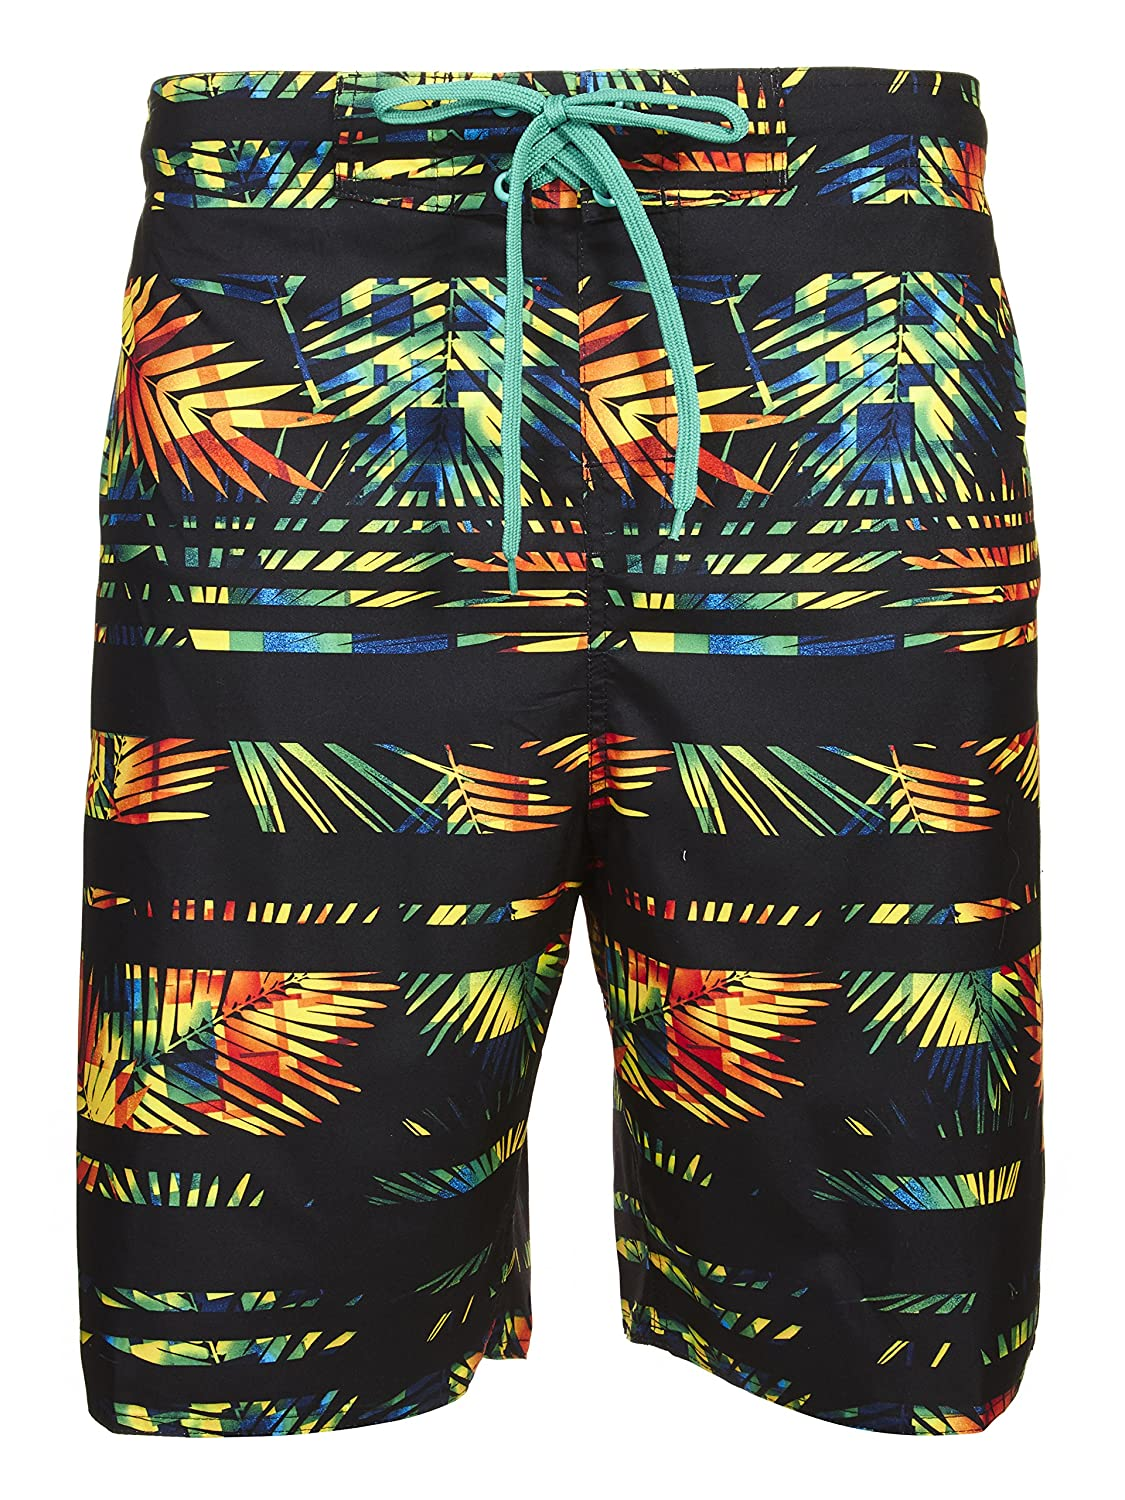 4d7115c41b PALM TREE PRINT board shorts with the comfort of classic pull-on swim trunks  - Features blue and pattern with palm tree designs. AT-KNEE CUT 8.5